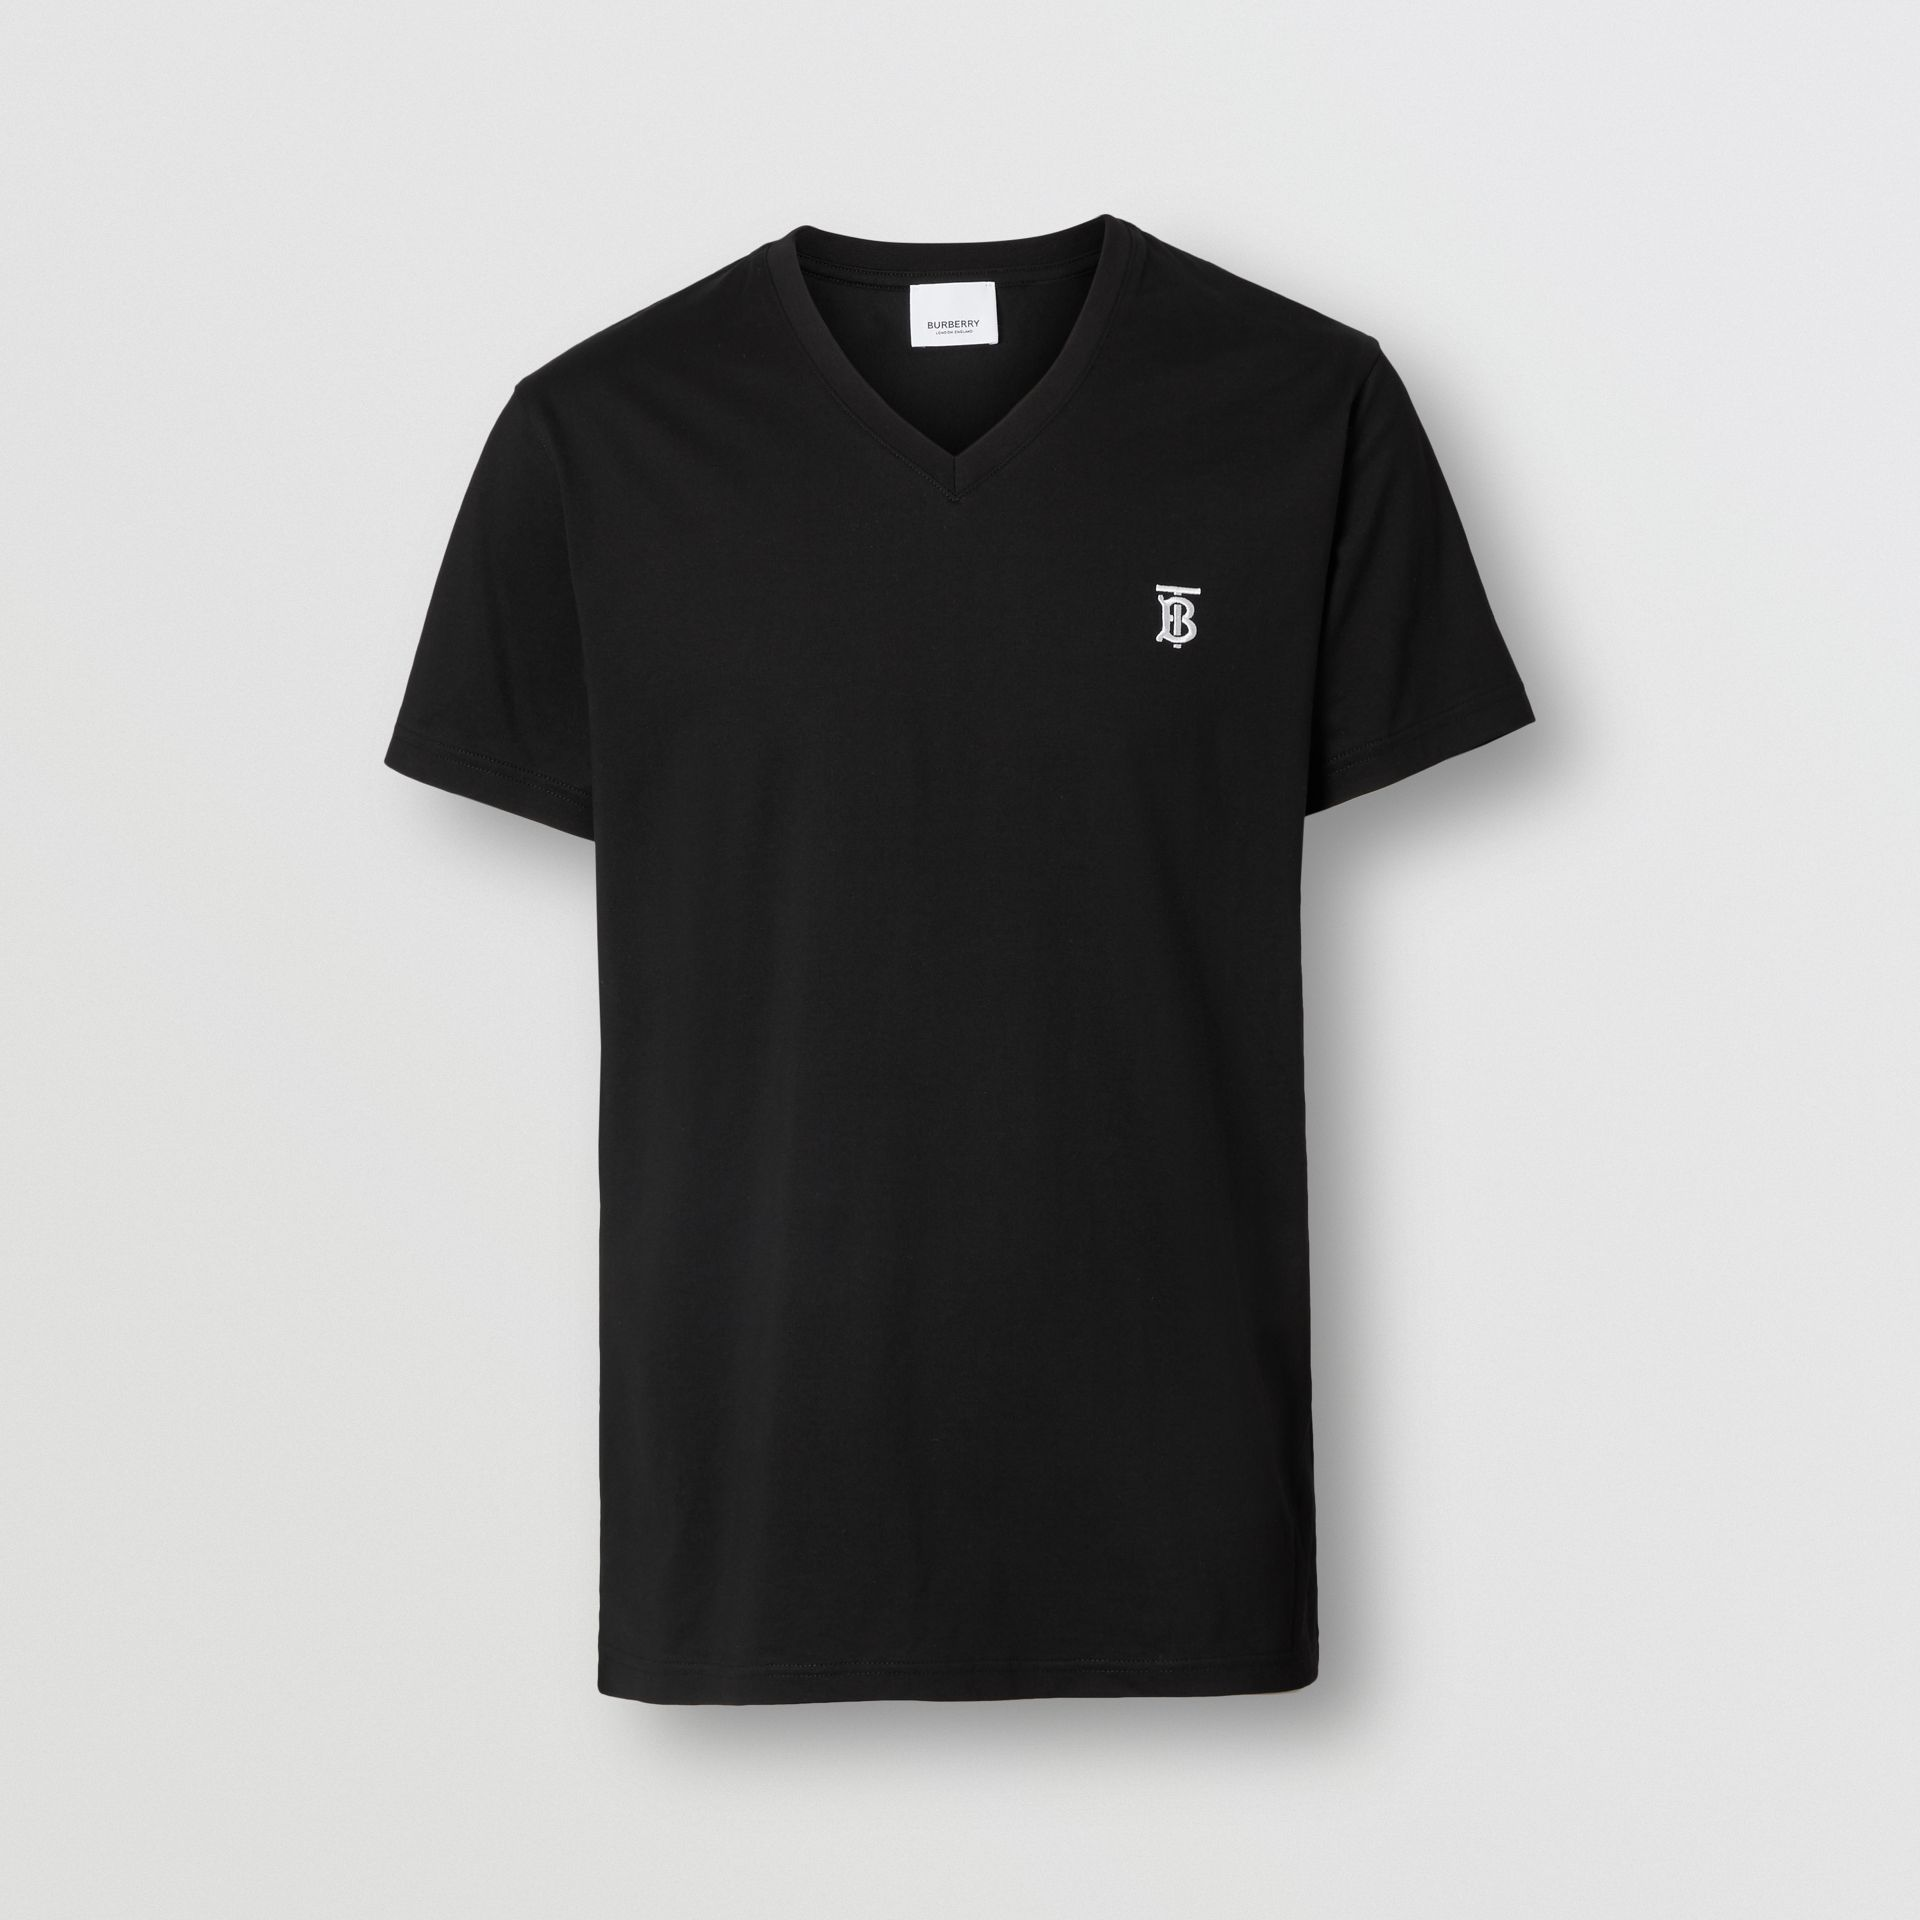 Monogram Motif Cotton V-neck T-shirt in Black - Men | Burberry - gallery image 3